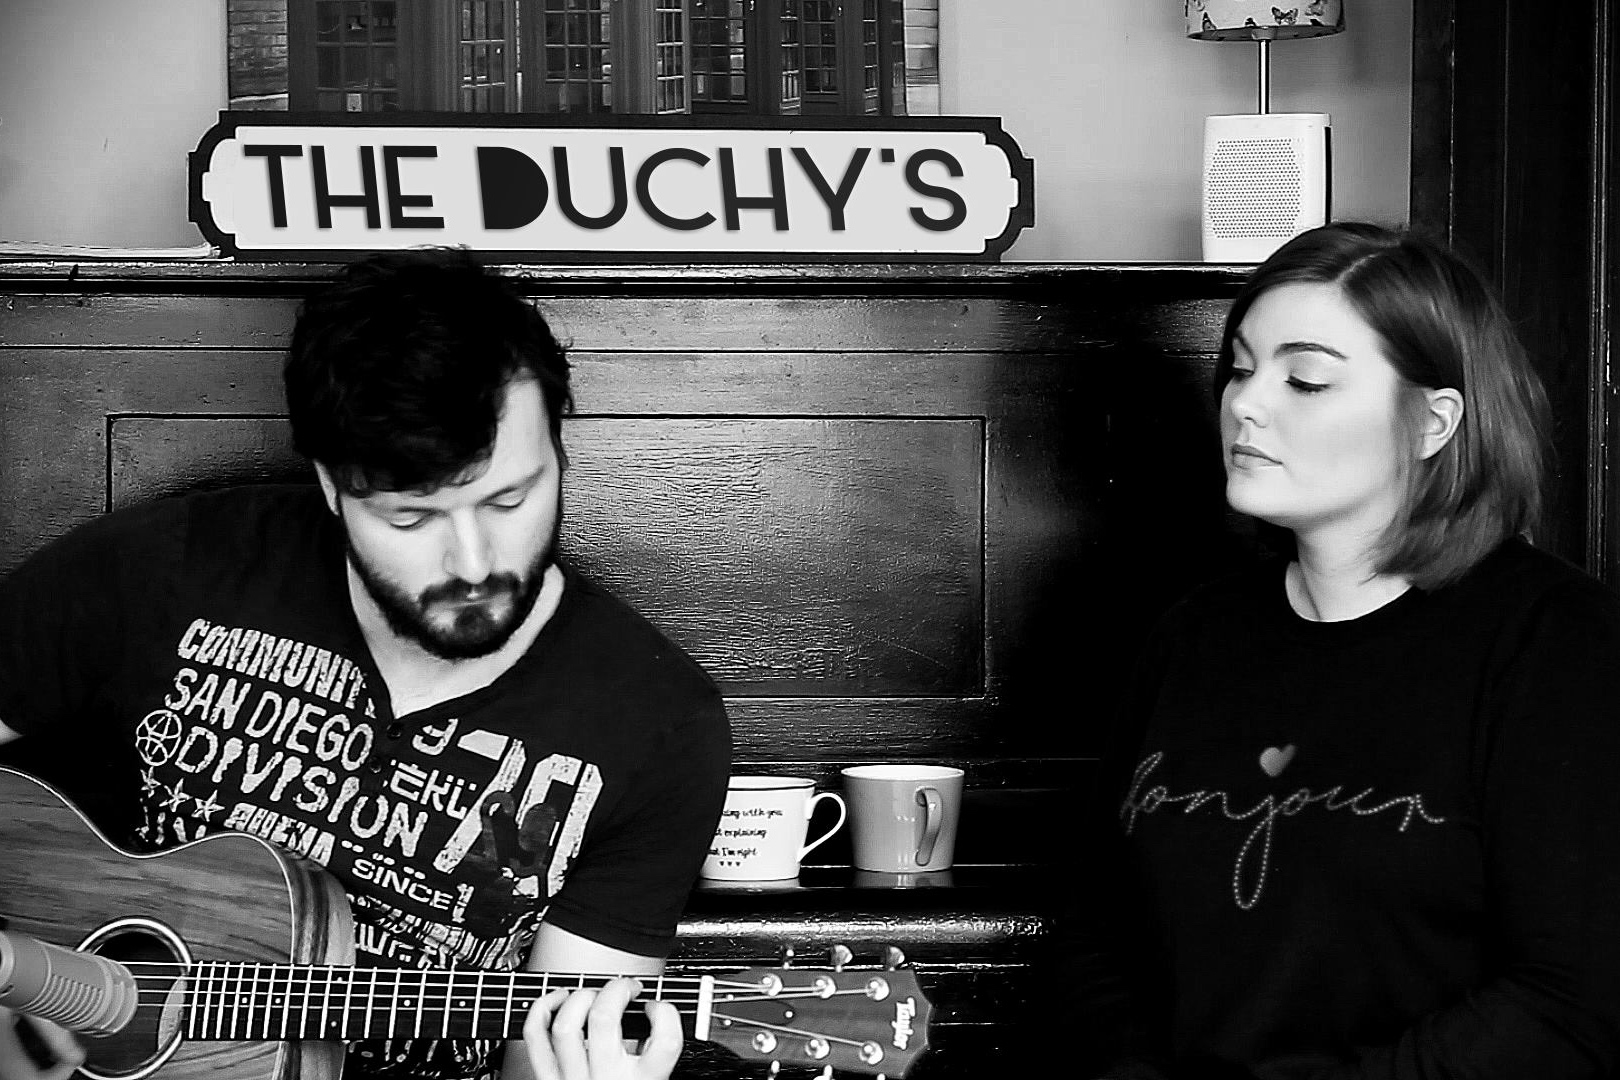 The Duchy's - An acoustic duet you're bound to love. From Aretha Franklin to Eva Cassidy, The Duchy's array of chilled-out covers offer a perfect atmosphere for you and your wedding guests.